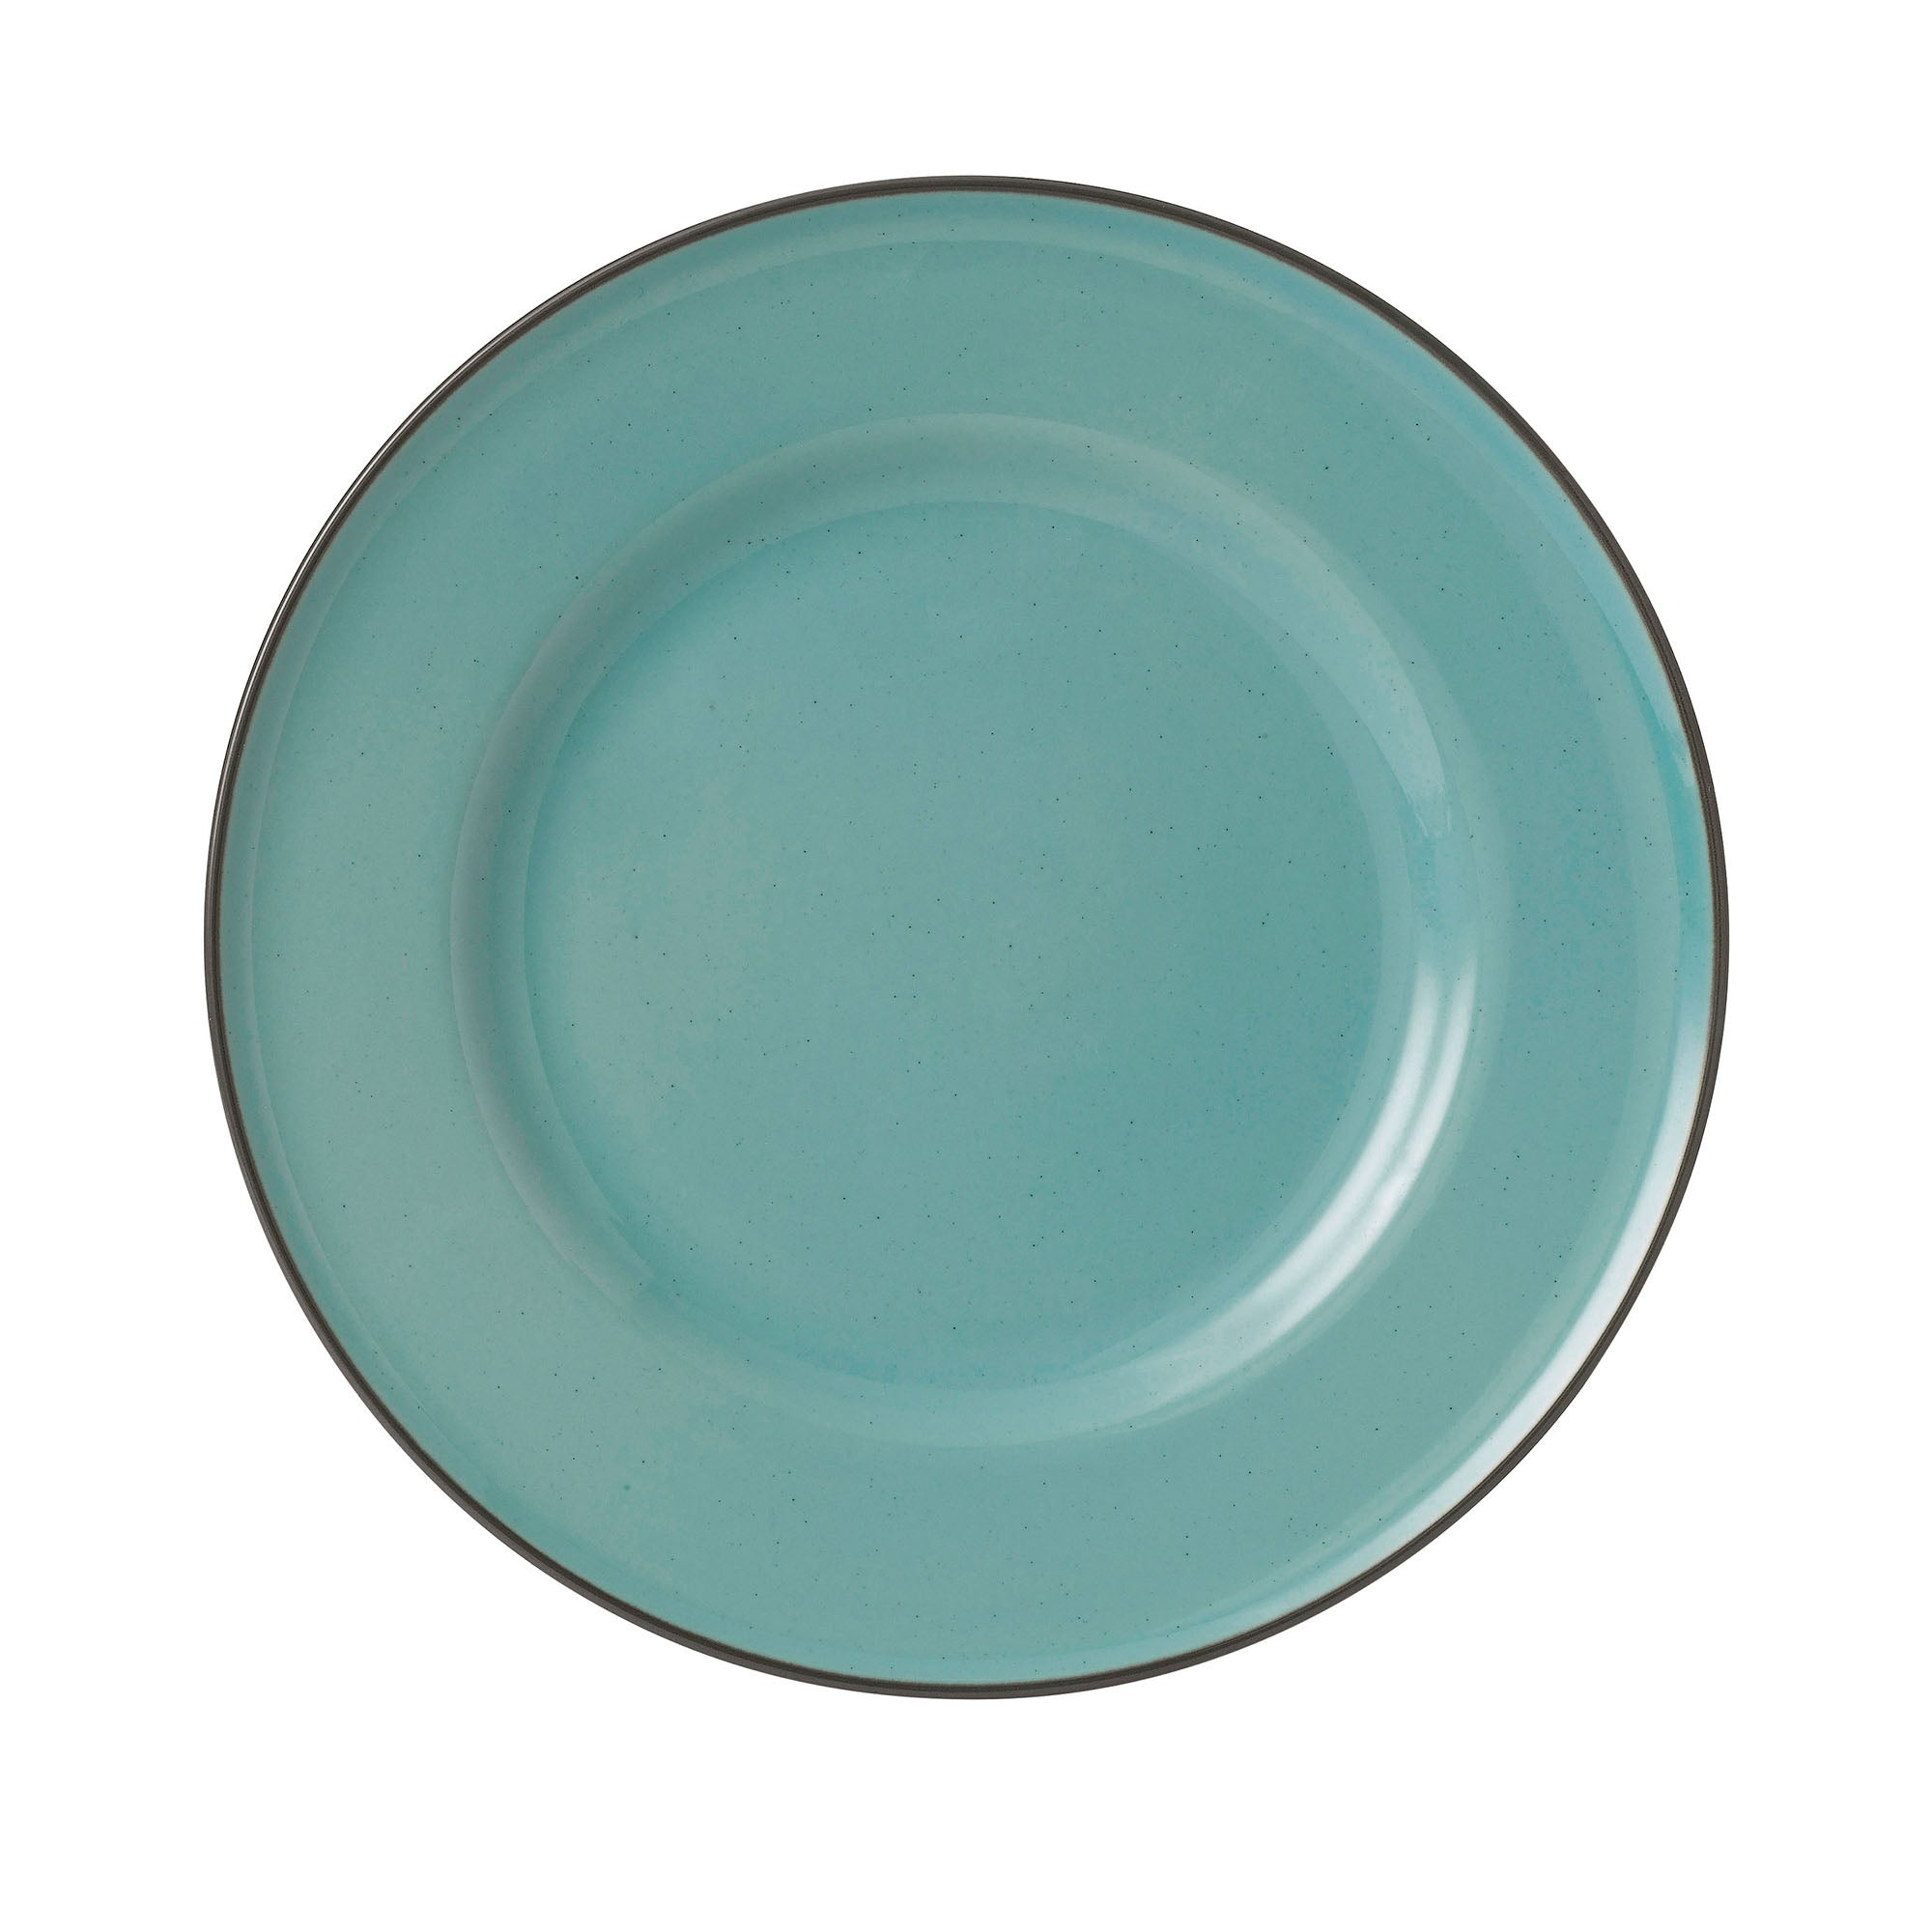 Image of Gordon Ramsay Teal Plate Teal (Blue)